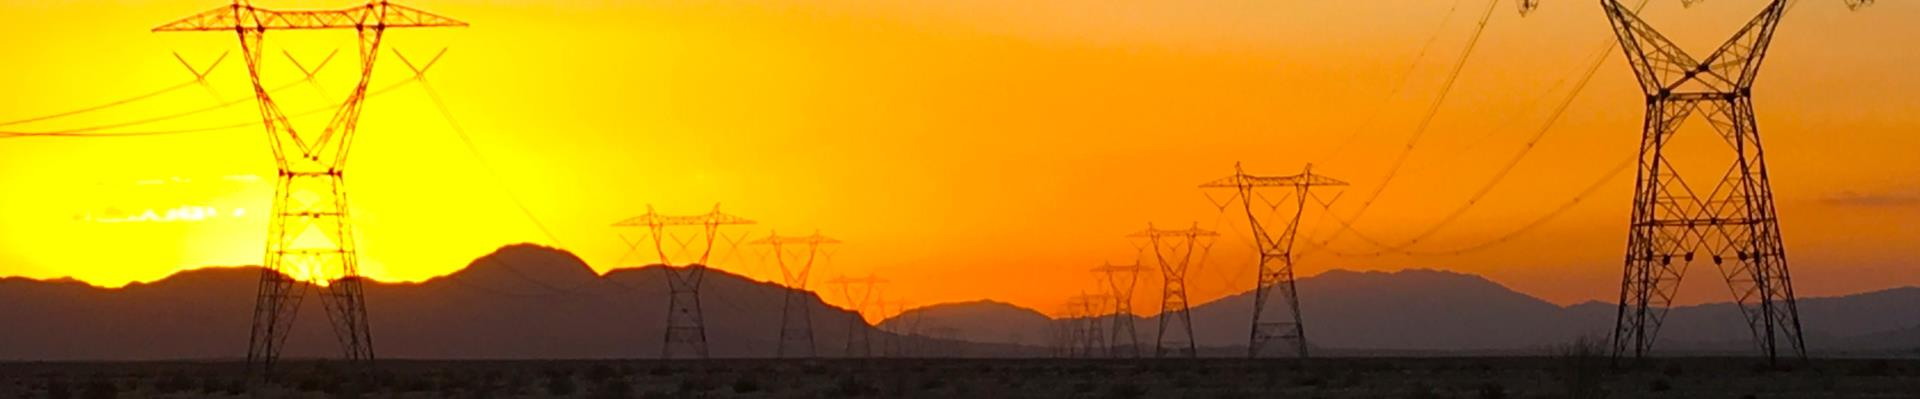 transmission lines in ocotillo during sunset